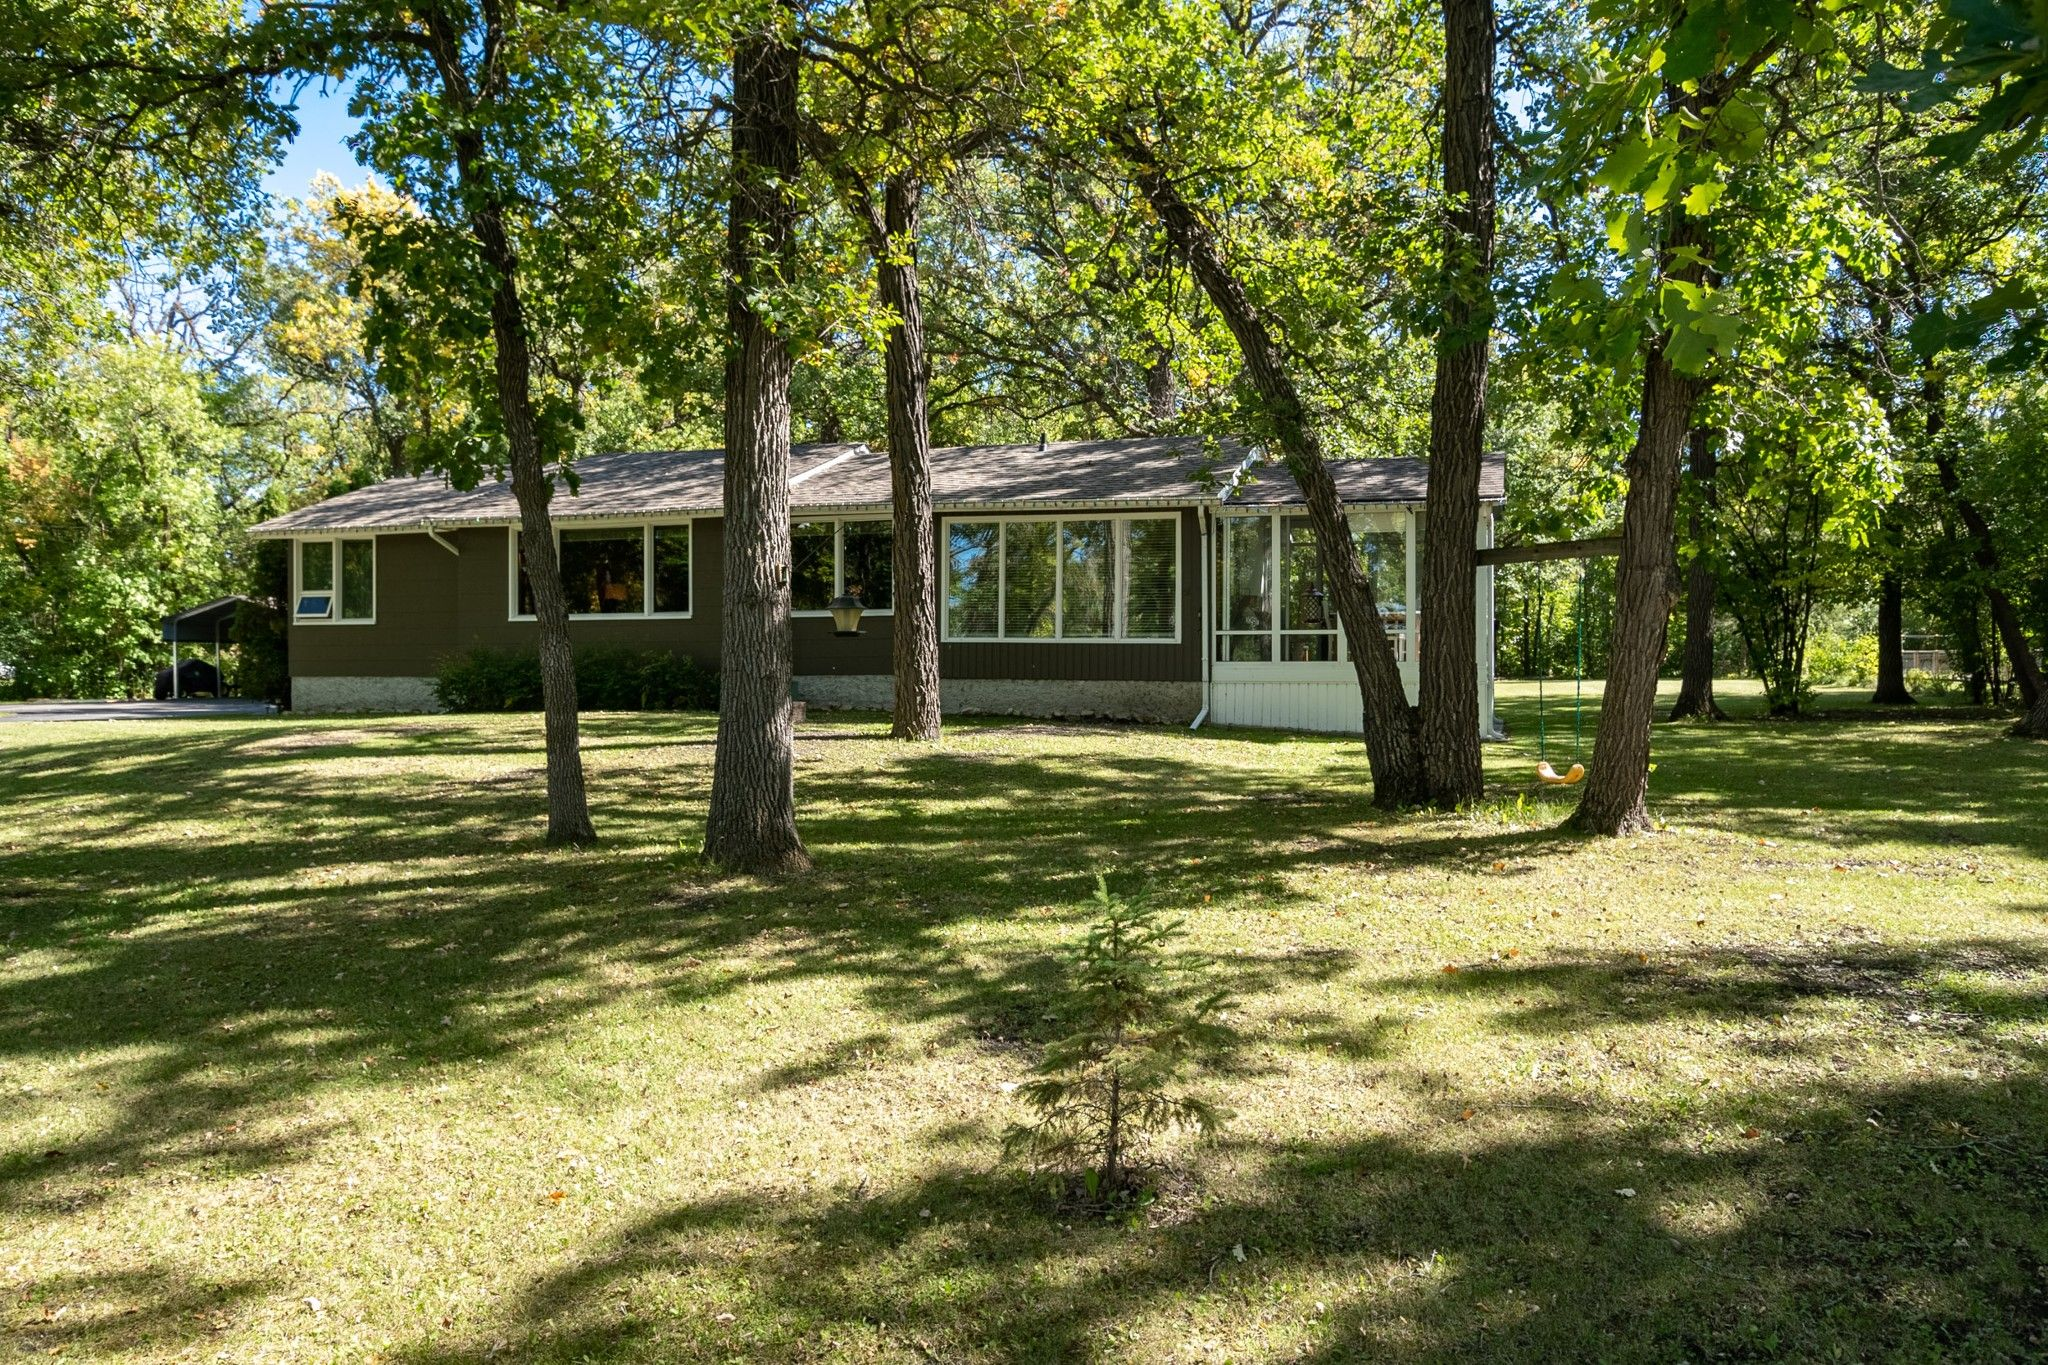 Main Photo: 3293 Henderson Highway: East St. Paul Single Family Detached for sale (3P)  : MLS®# 202023460